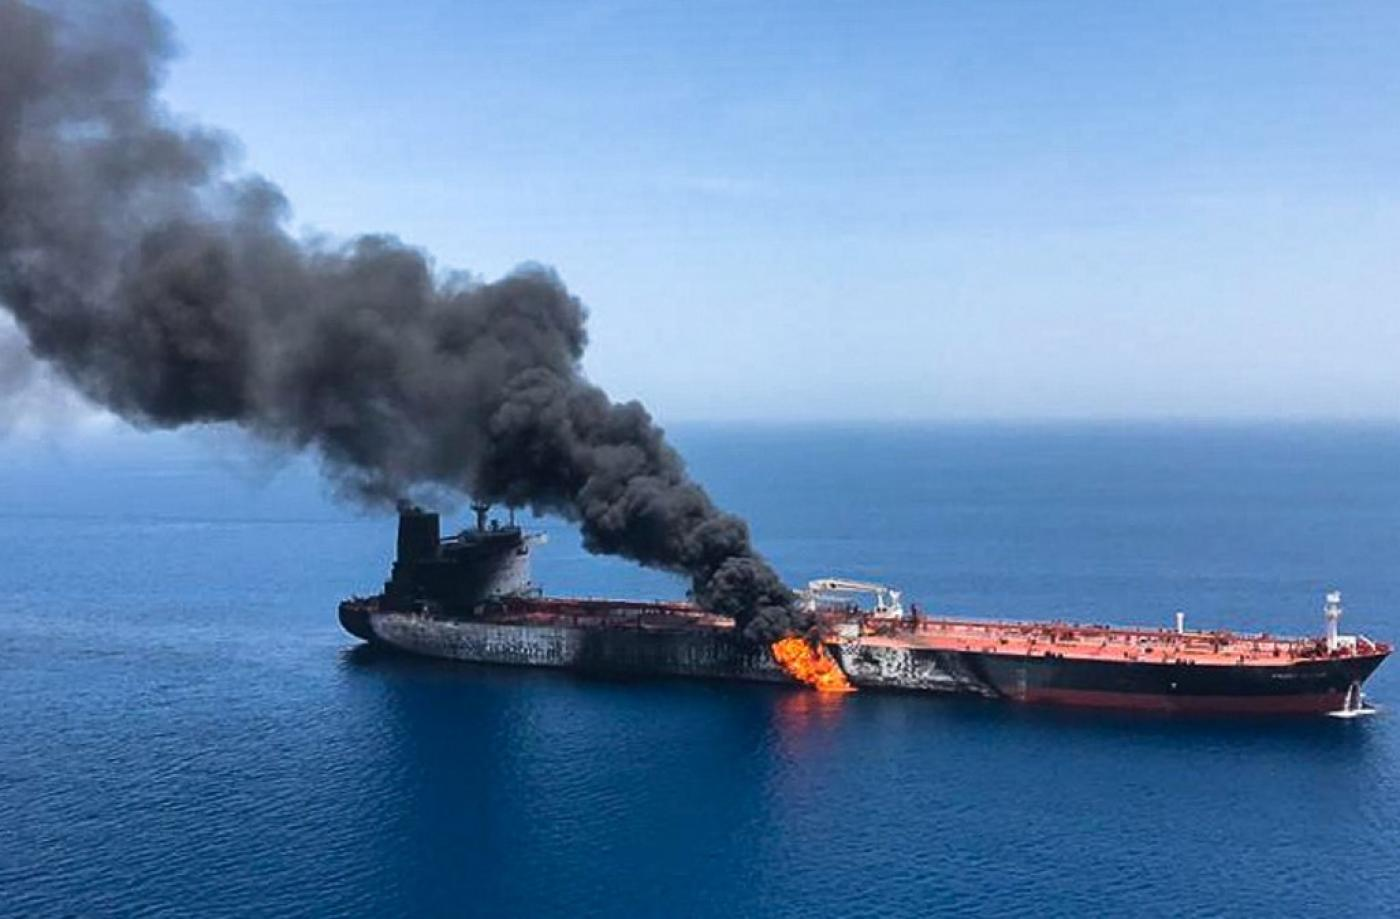 United Kingdom ambassador sought meeting with Iran's Foreign Ministry amid oil tanker row